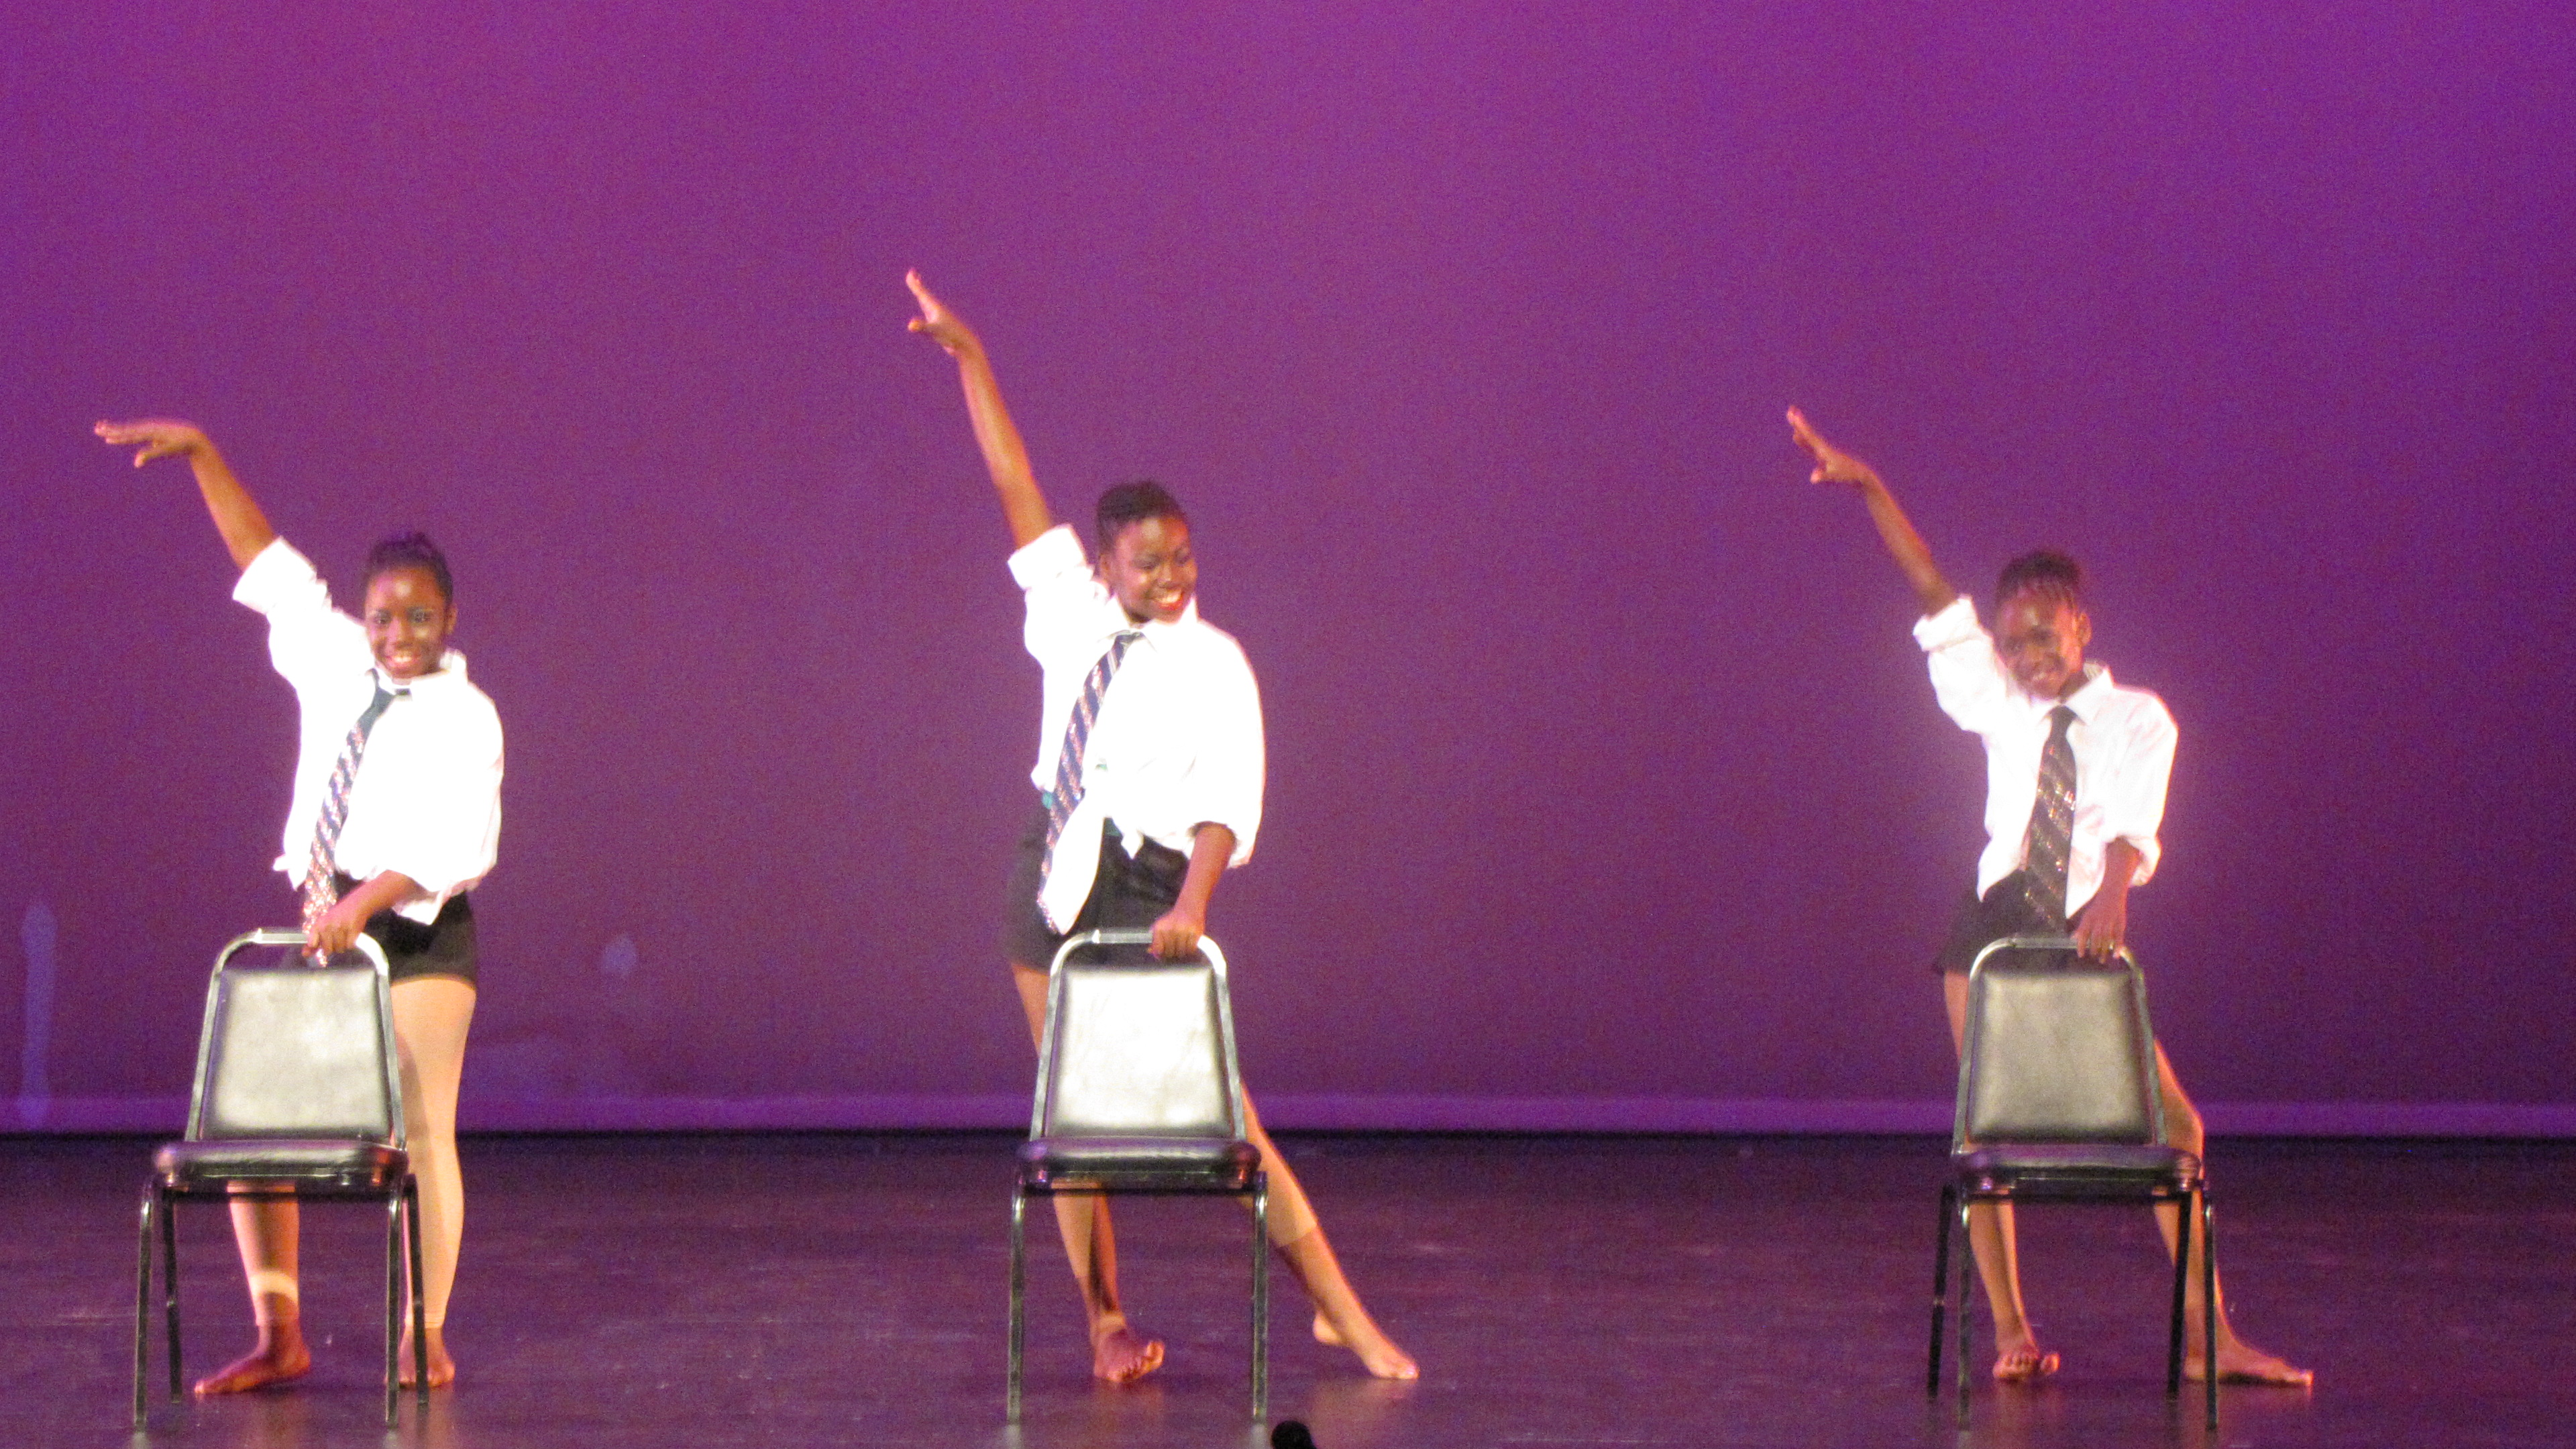 Youth in a Performing Arts Dance